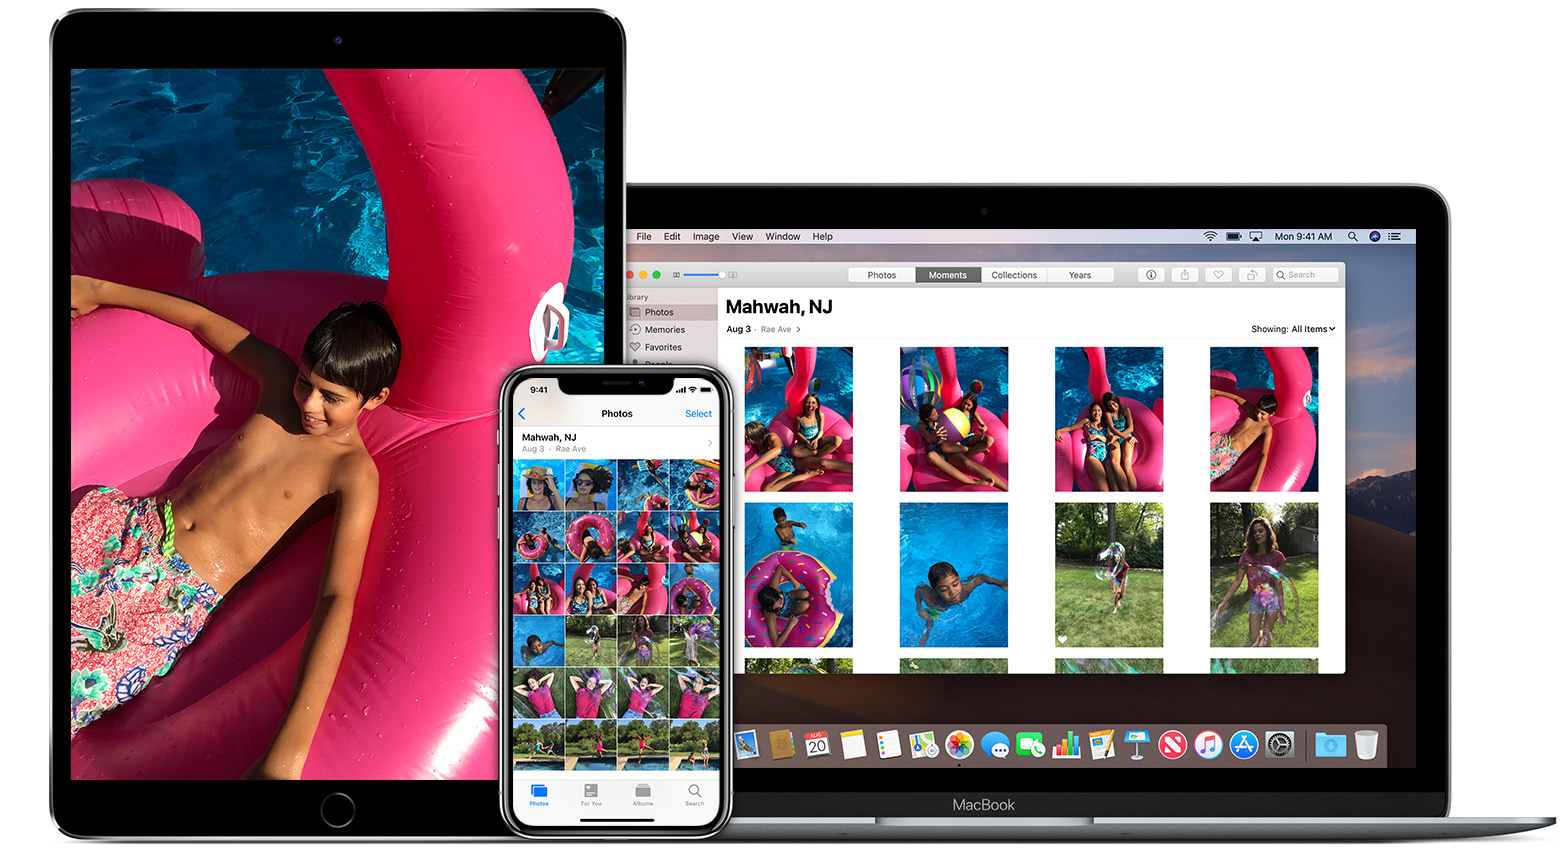 App Photos sur un iPad, un iPhone et un Mac